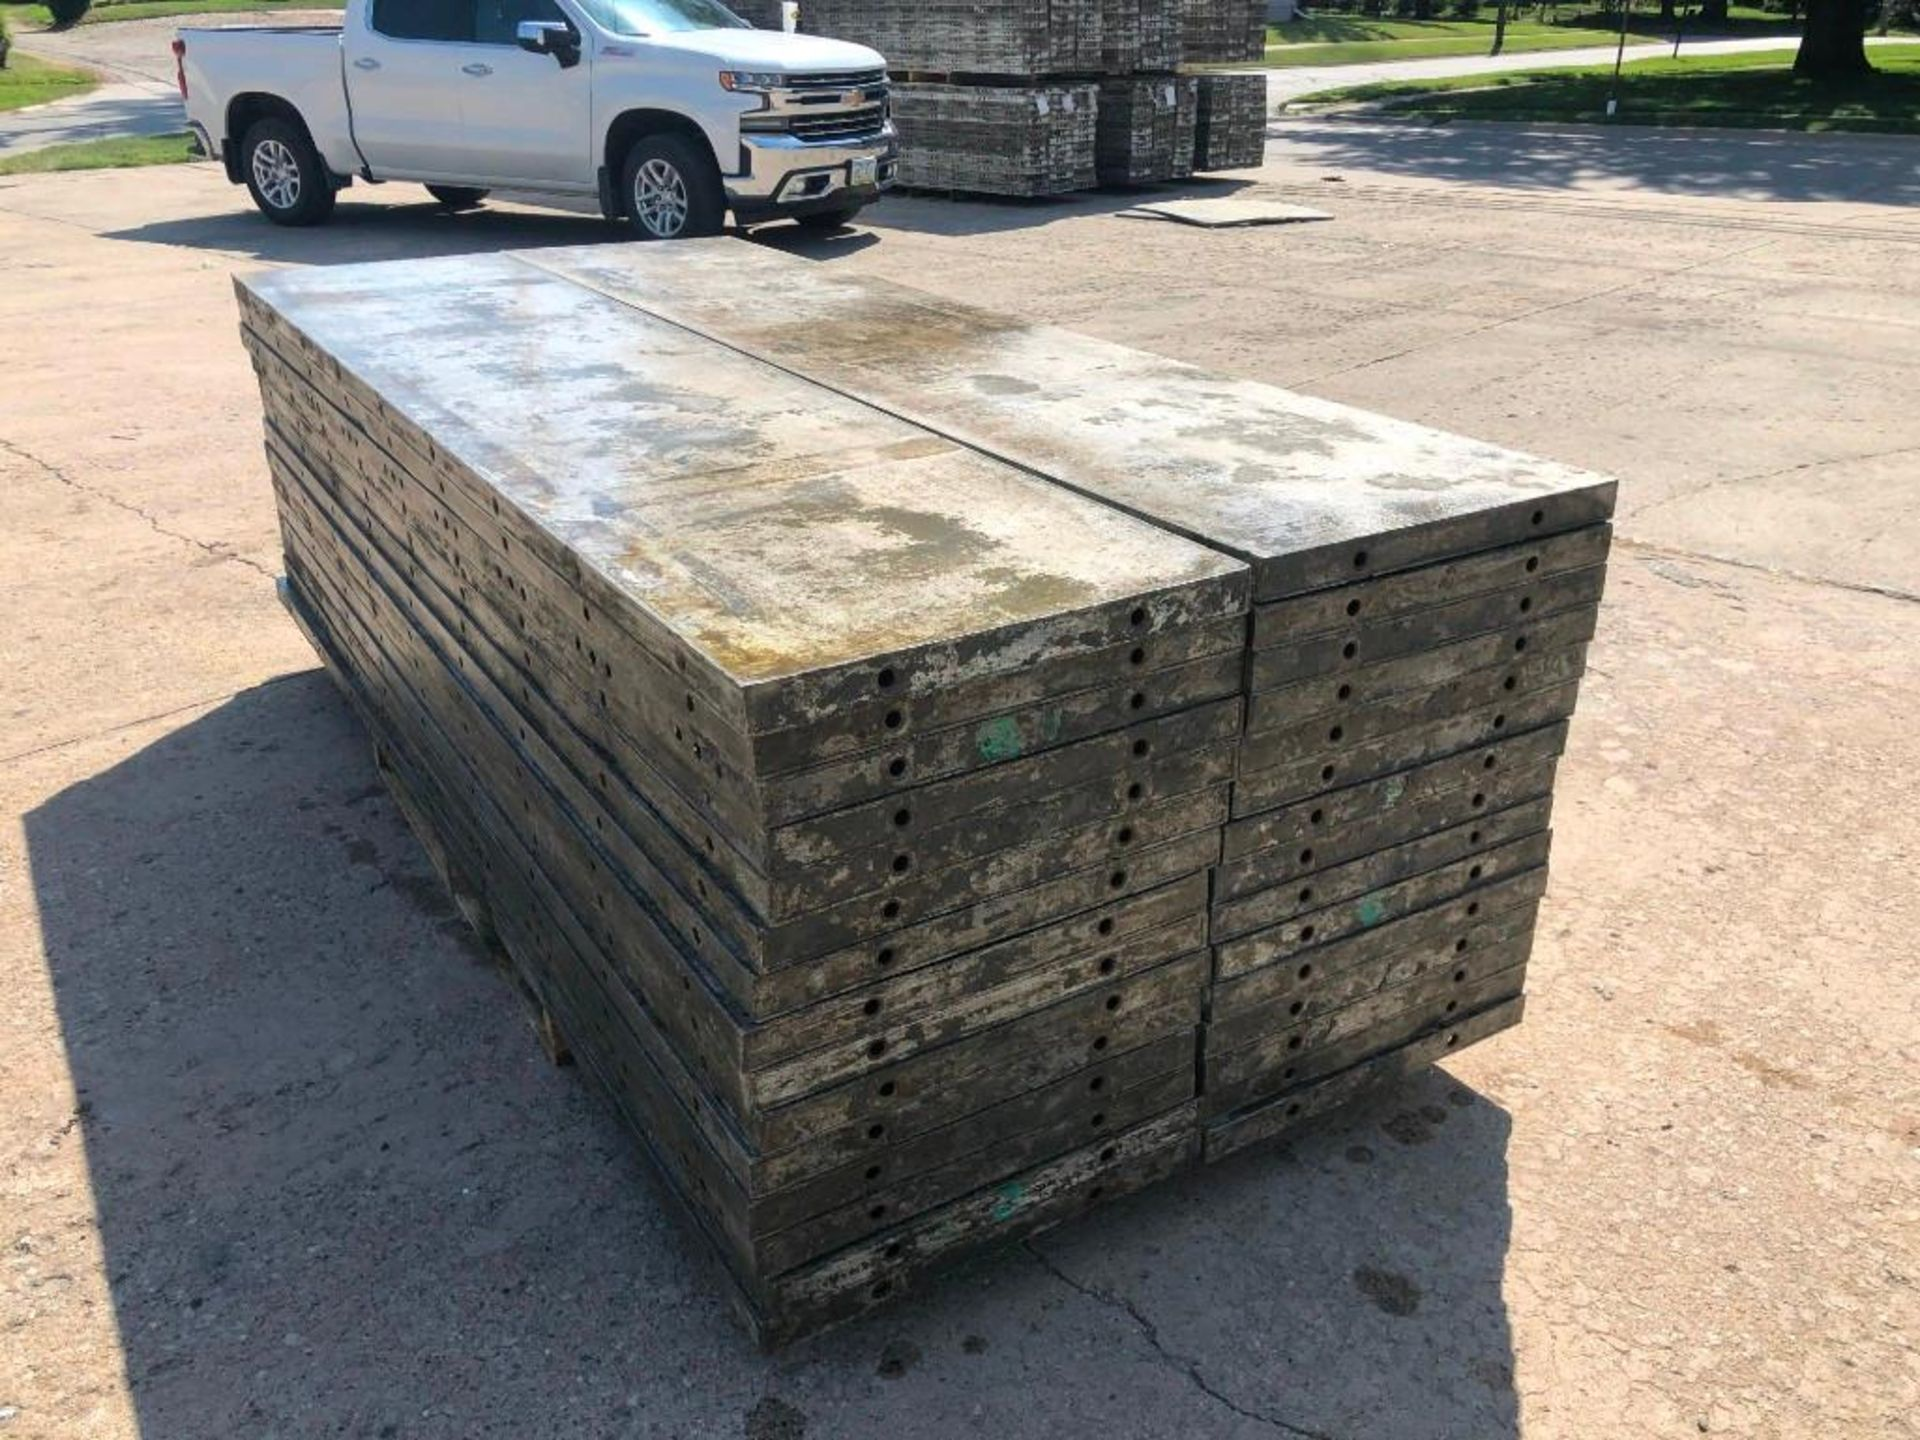 Lot 138 - (30) 2' x 9' Wall-Ties Aluminum Concrete Forms, Laydowns, Smooth 6-12 Hole Pattern. Located at 301 E